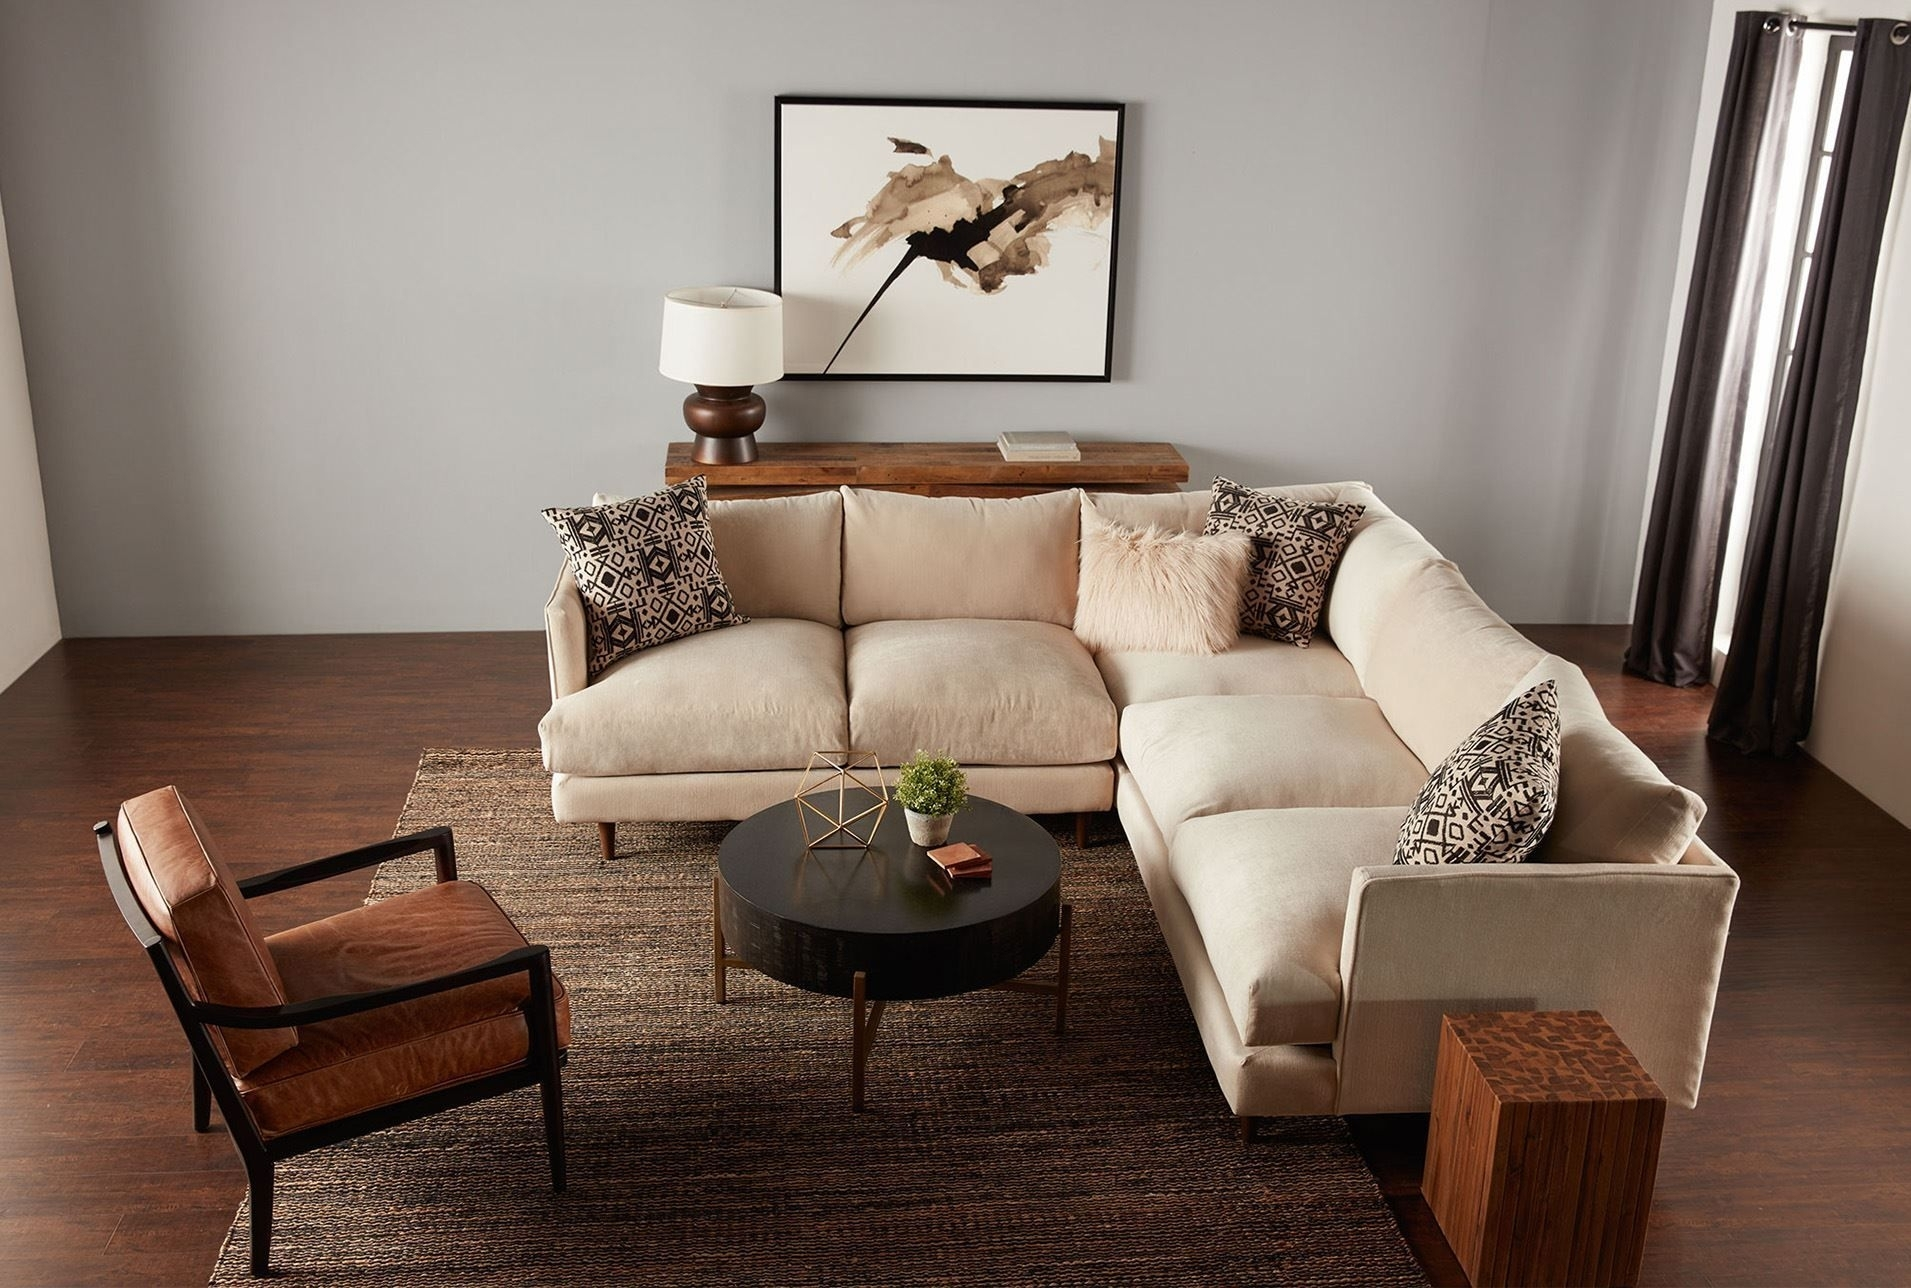 Adeline 3 Piece Sectional | Living Room Redesign | Pinterest With Regard To Adeline 3 Piece Sectionals (View 2 of 25)